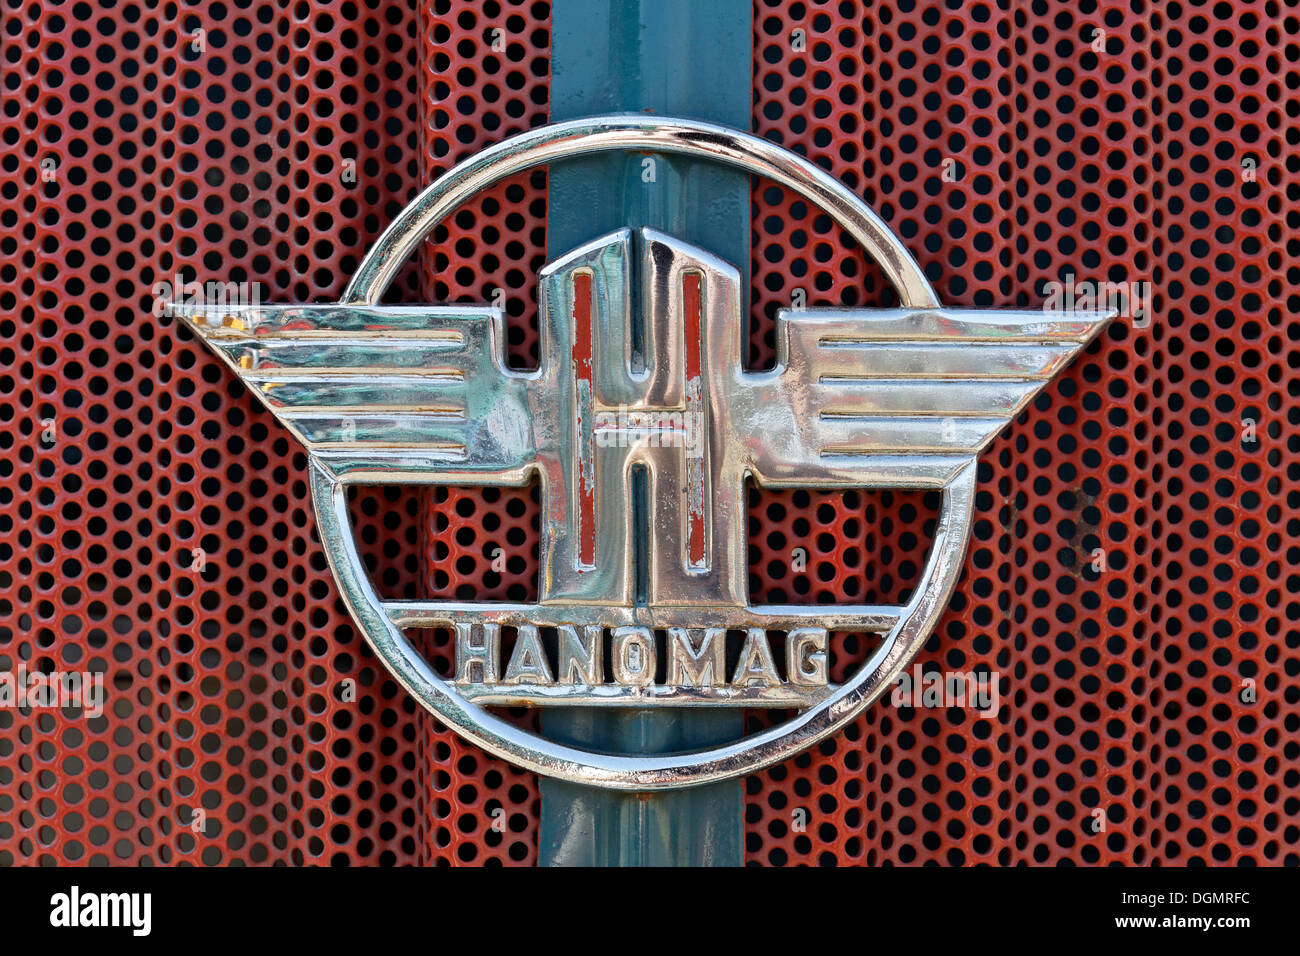 Cooler with the Hanomag logo, vintage tractor - Stock Image